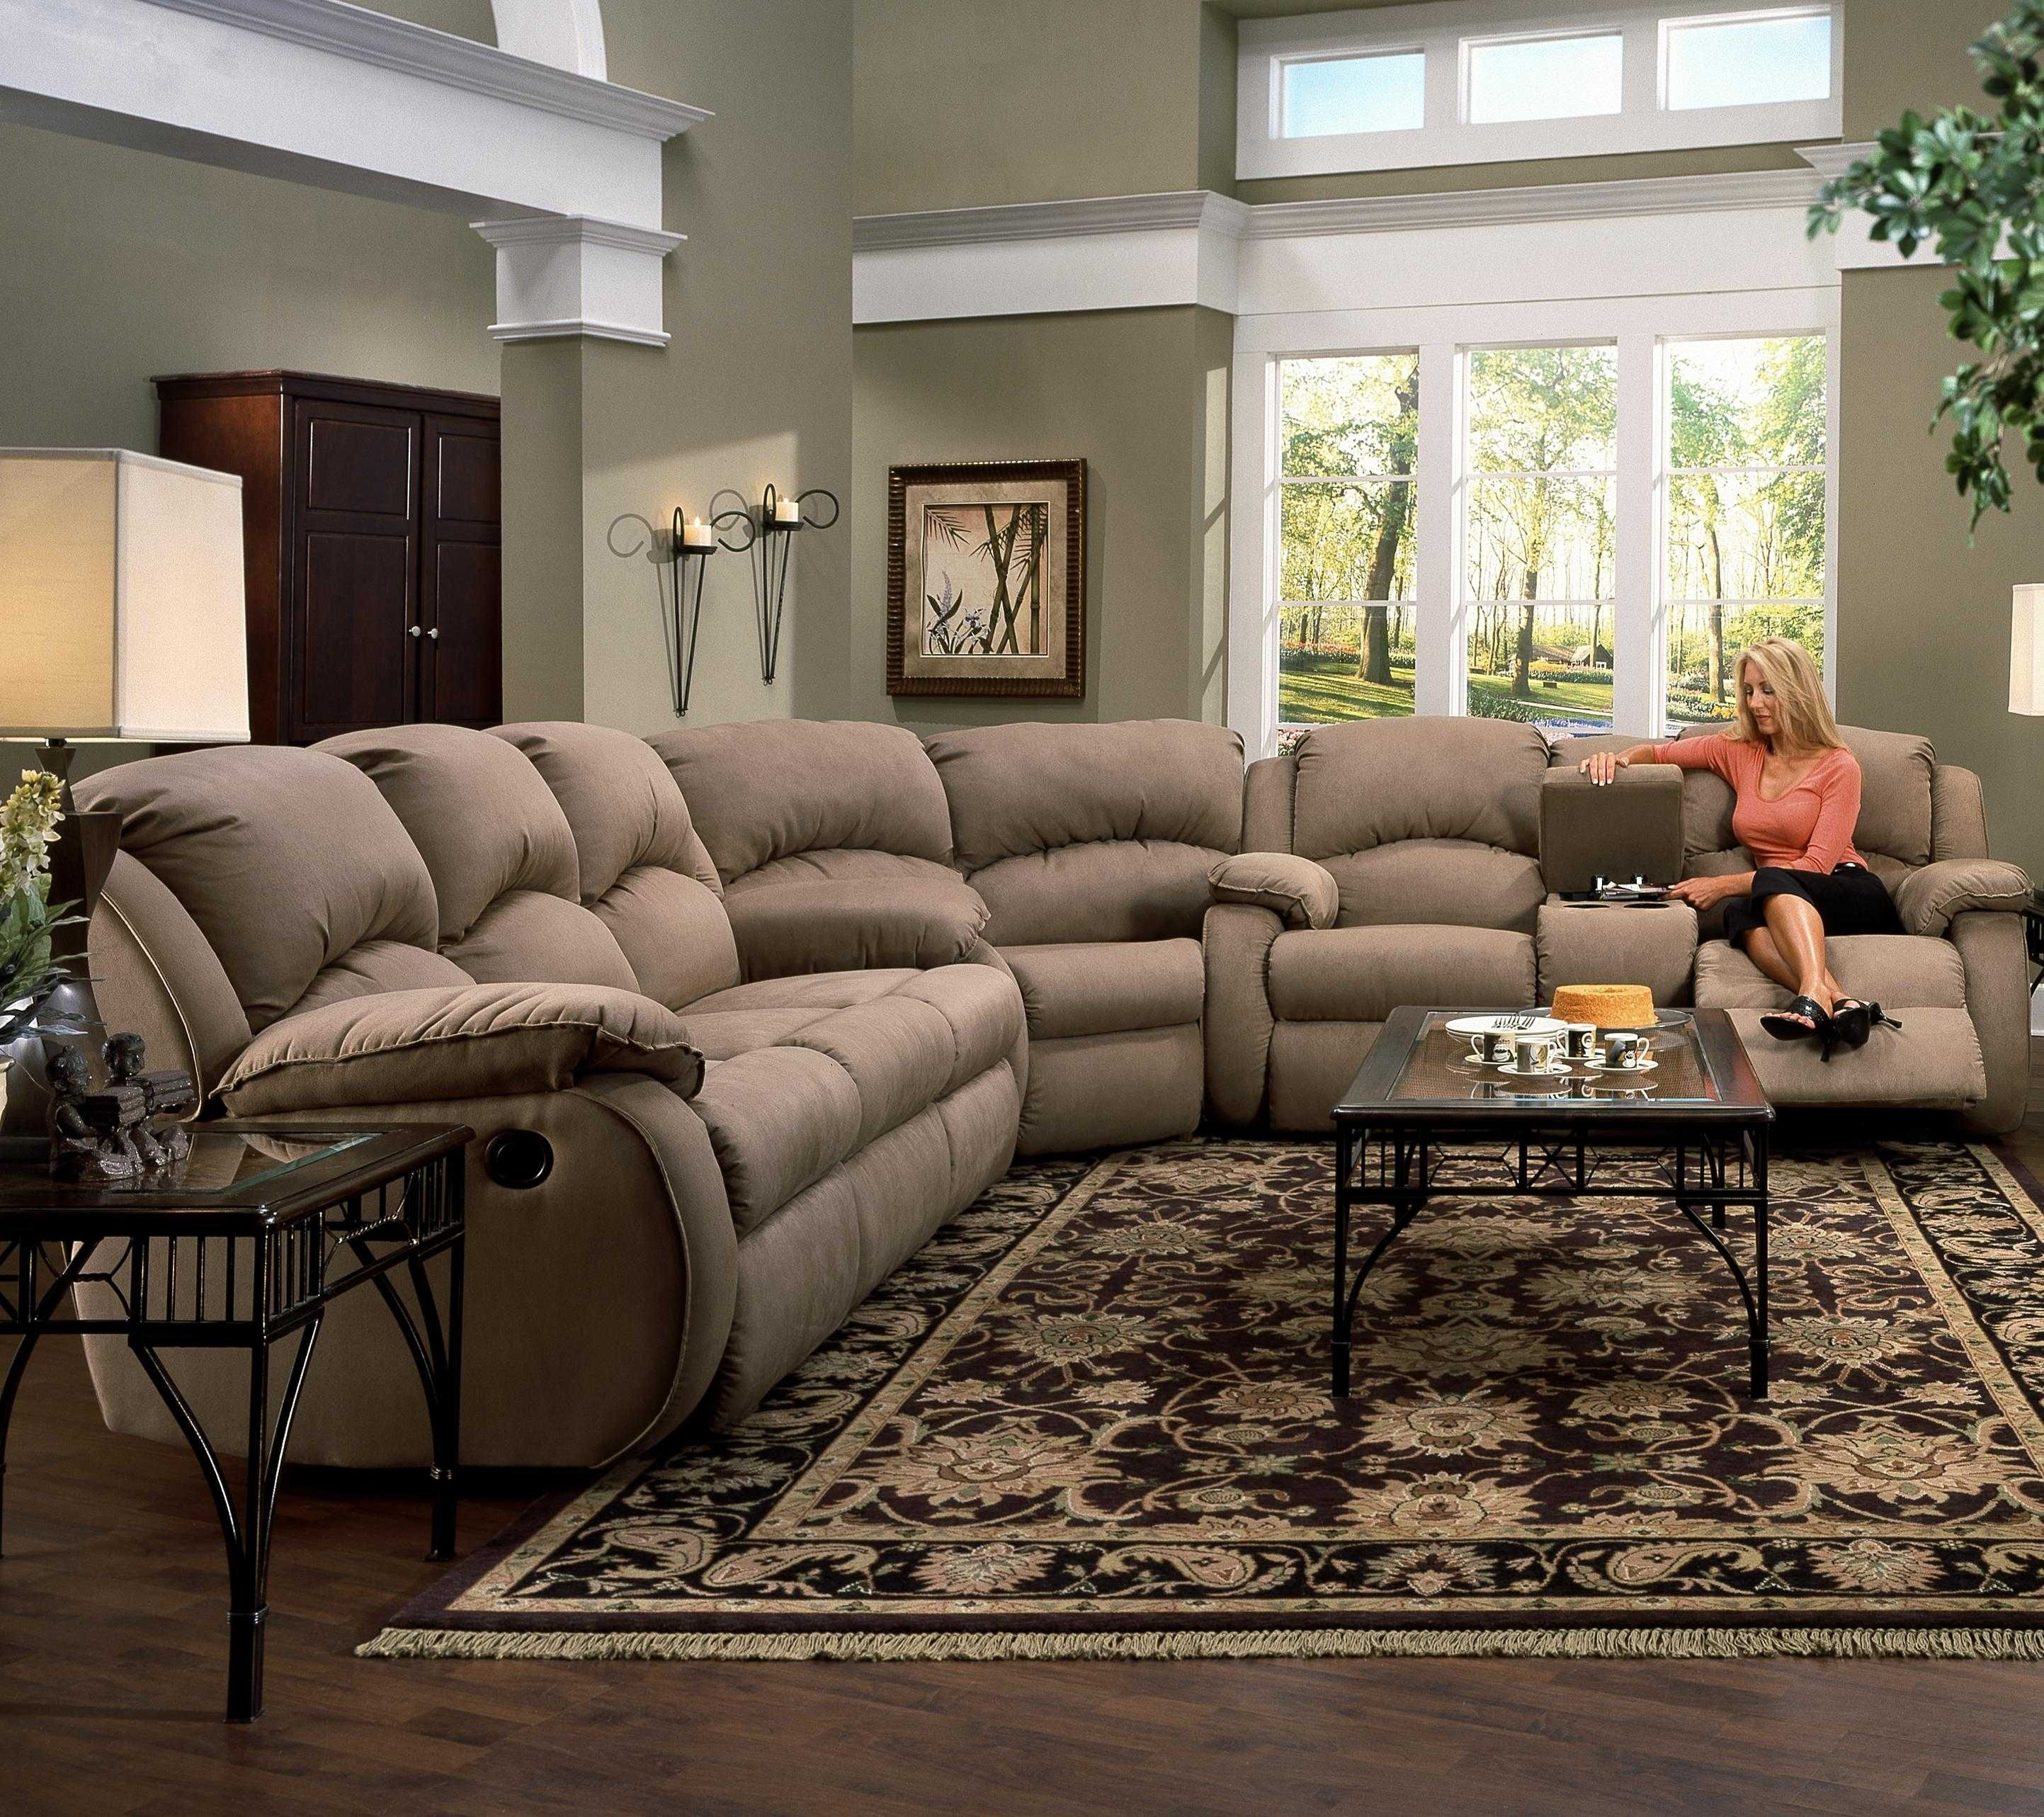 Sectional Sofas With Recliners And Cup Holders Sofa Set Clearance in Sectional Sofas With Cup Holders (Image 7 of 10)